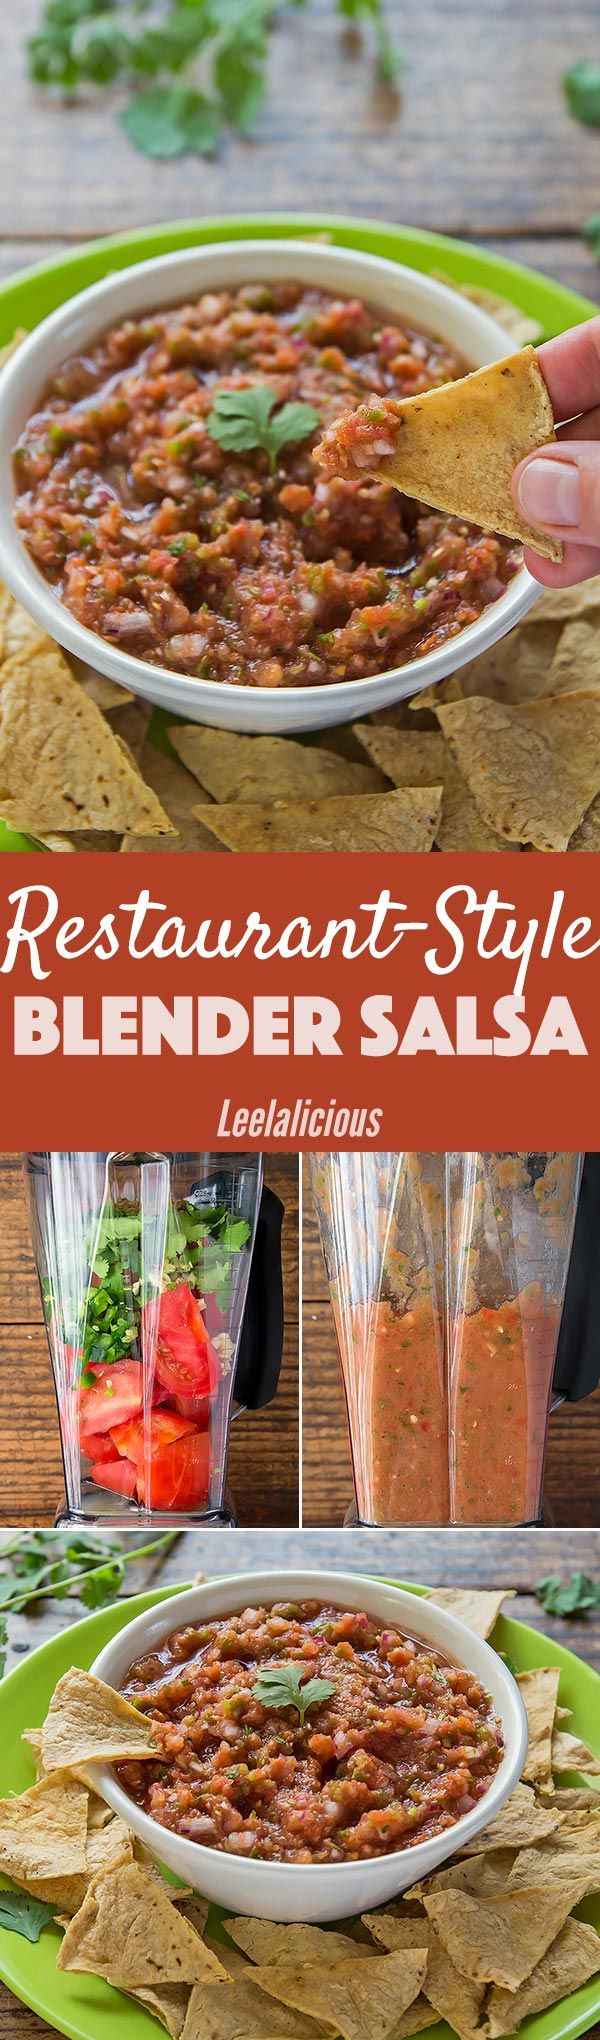 This easy restaurant-style salsa is made in the blender with healthy, fresh ingredients. It's great for dipping or to use in any Mexican recipes. Sponsored  Appetizer   Condiment   Tomatoes